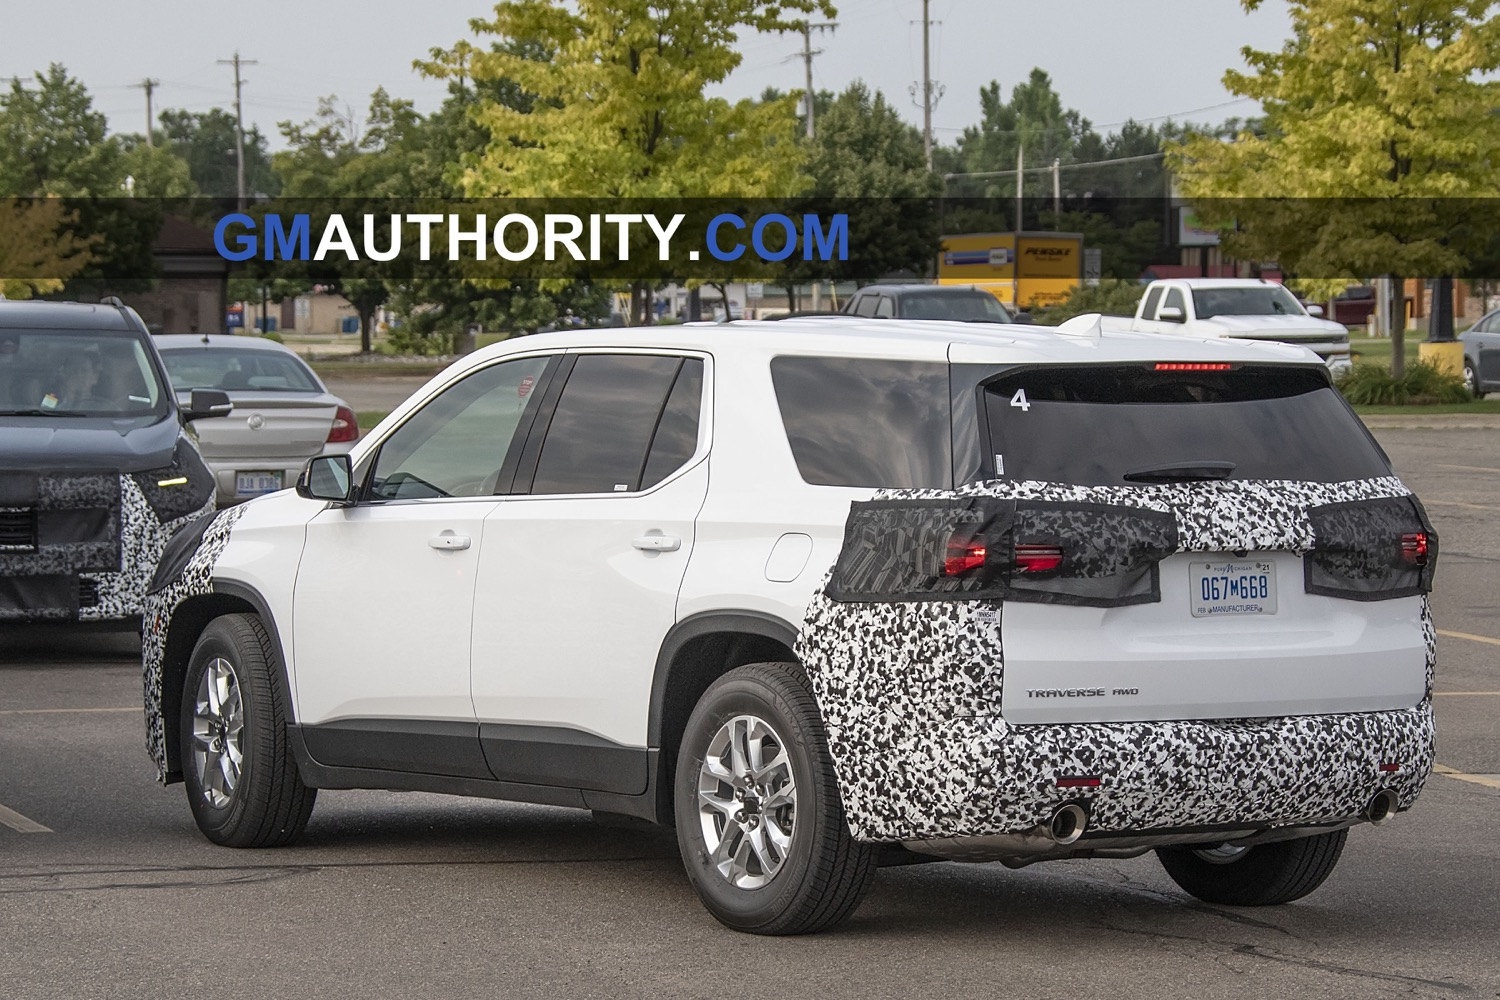 2021 Chevrolet Traverse Info, Specs, Wiki   Gm Authority 2021 Chevy Traverse High Country Specs, Features, Near Me